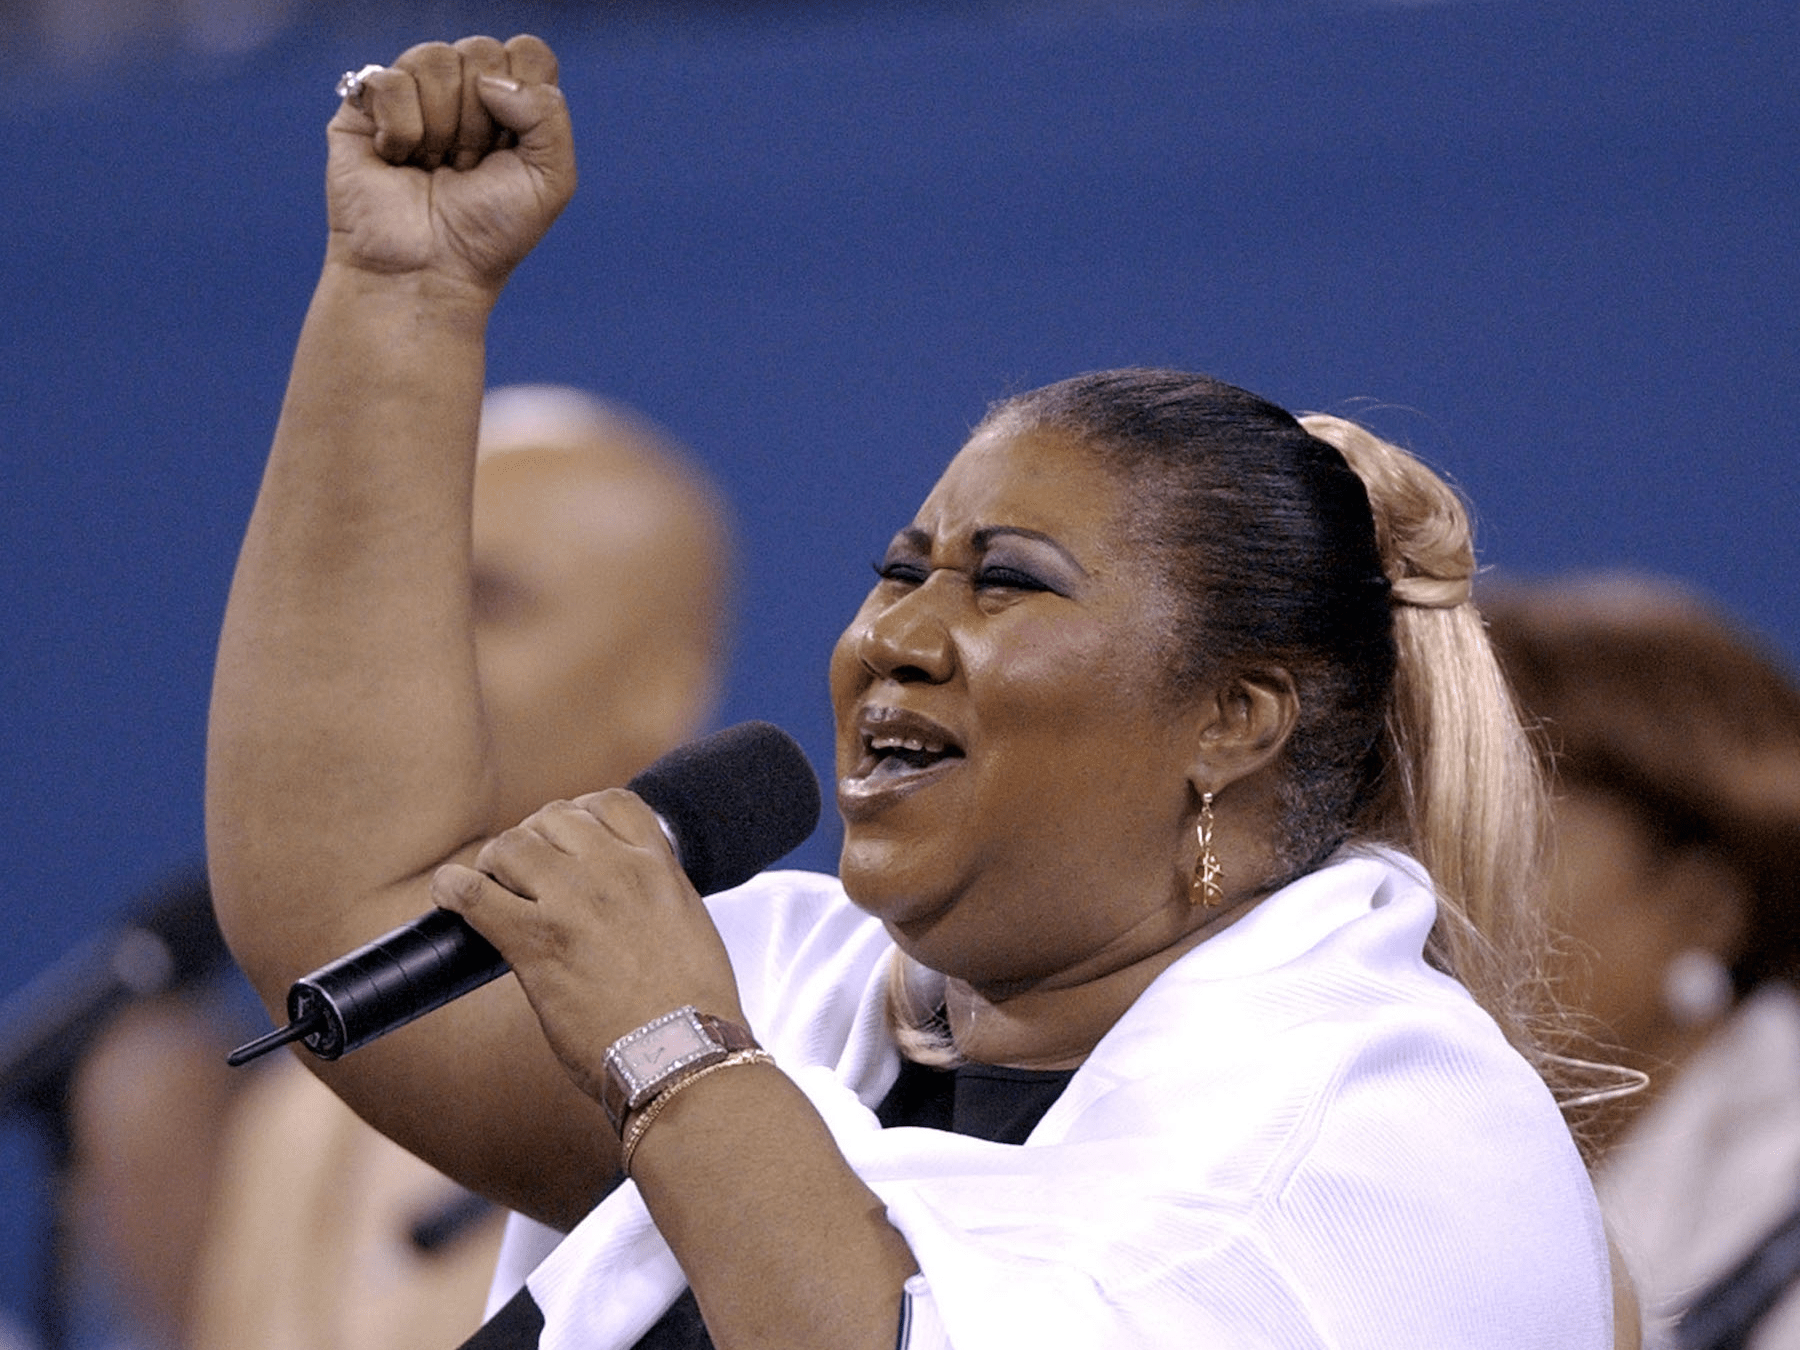 Aretha Franklin sings before Womens Final at US open 2002 AP